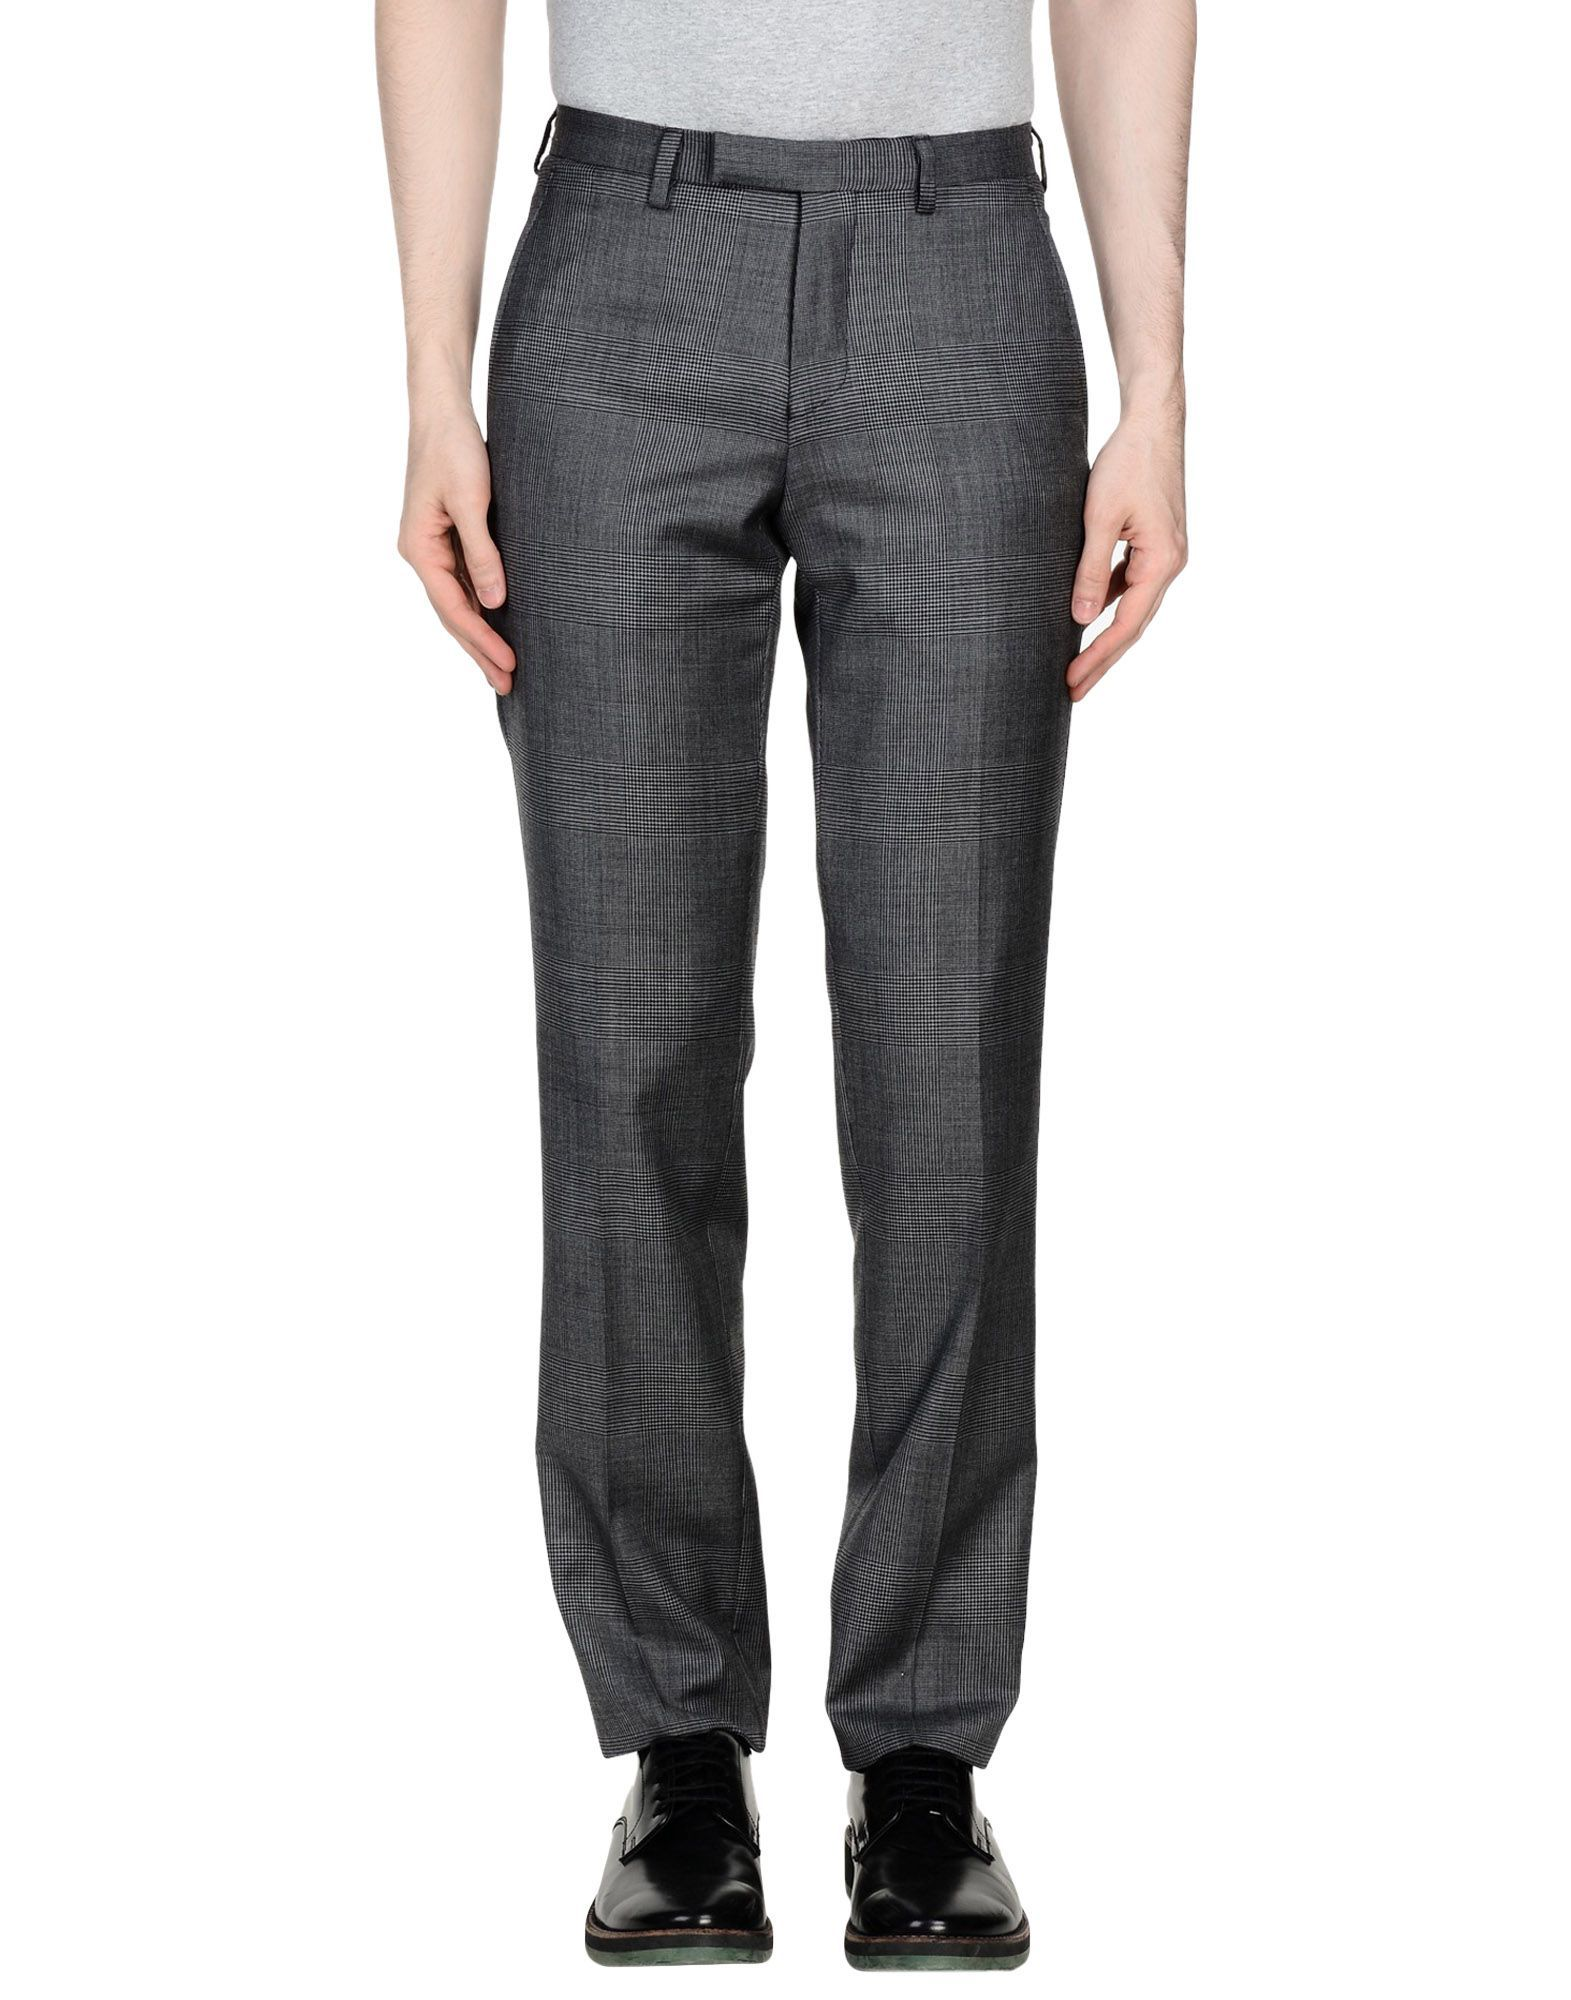 DKNY Grey Wool Tailored Straight Leg Trousers